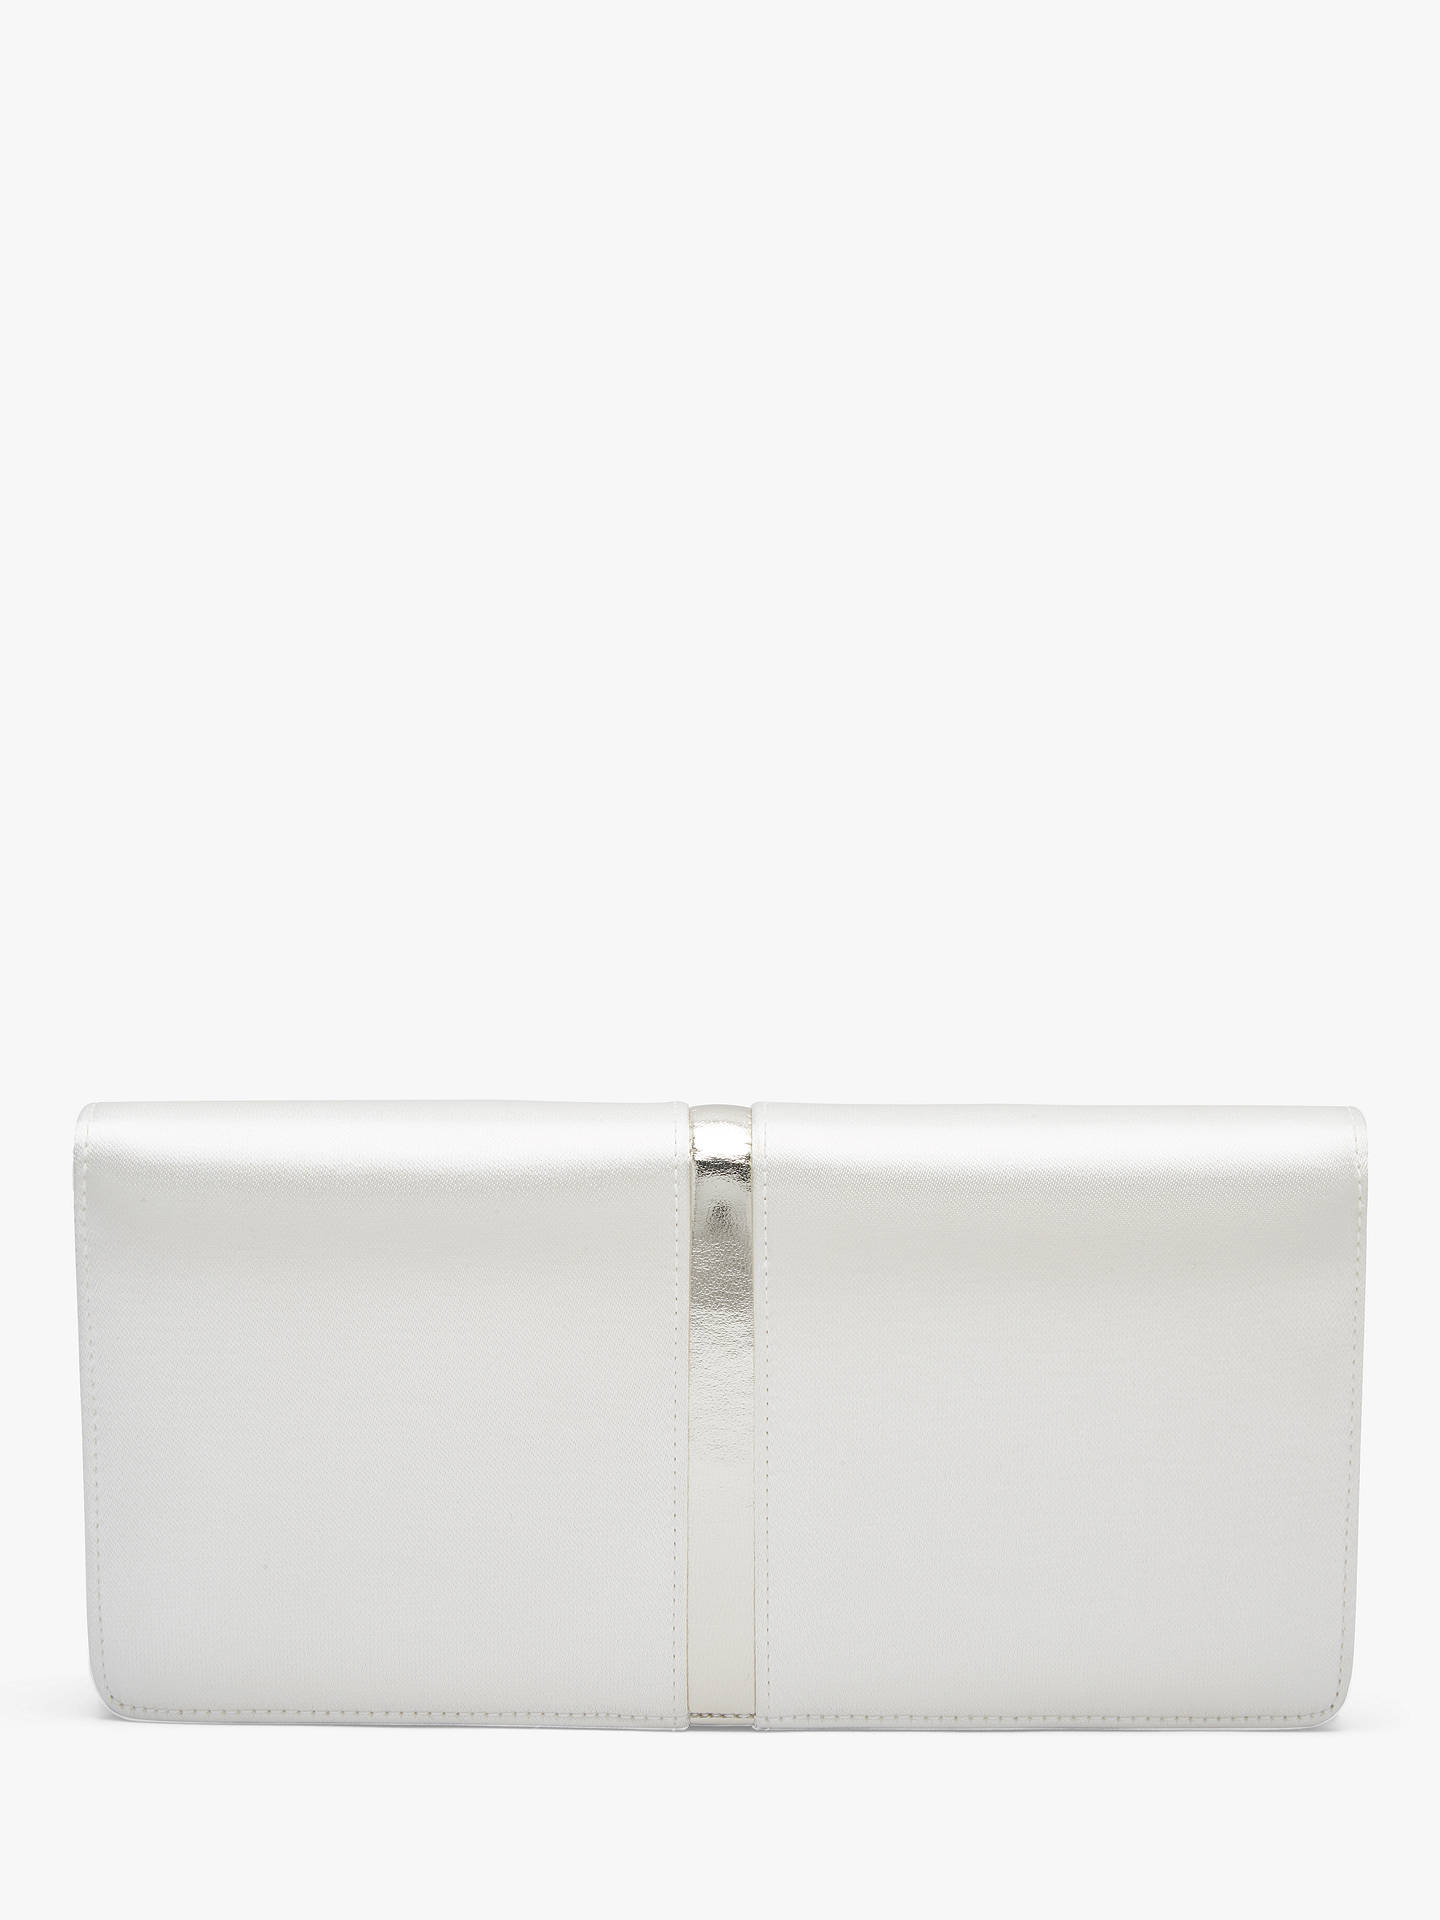 BuyRainbow Club Trudie Satin Clutch, Ivory Online at johnlewis.com